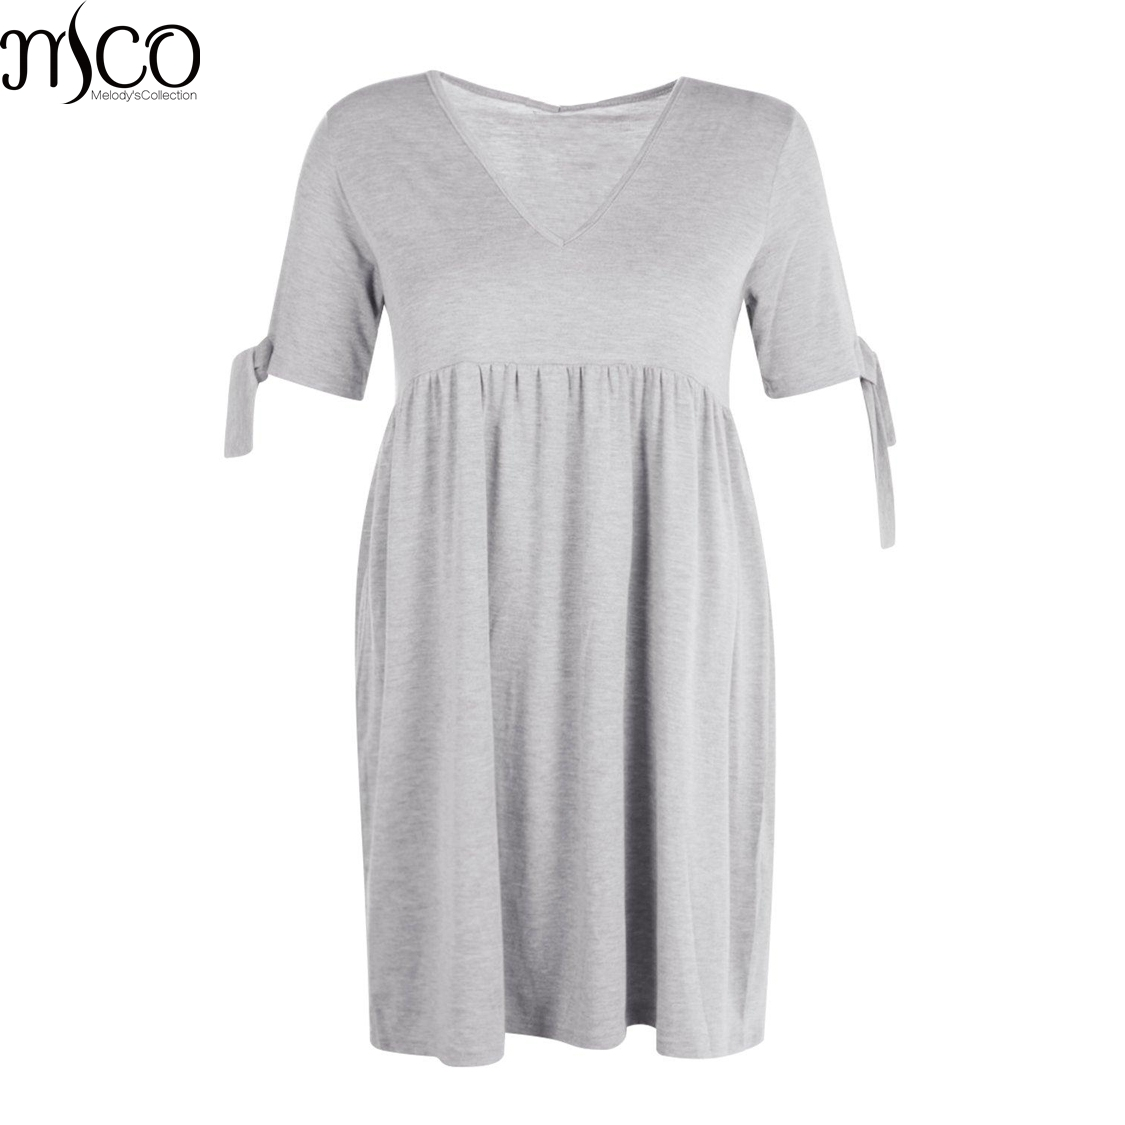 US $19.43 |MCO Summer Casual Tie Sleeves Plus Size Smock Dress Oversized  Swing Day Mini Dresses Ultimate Easy Loose Women Clothing 6XL 7XL-in  Dresses ...